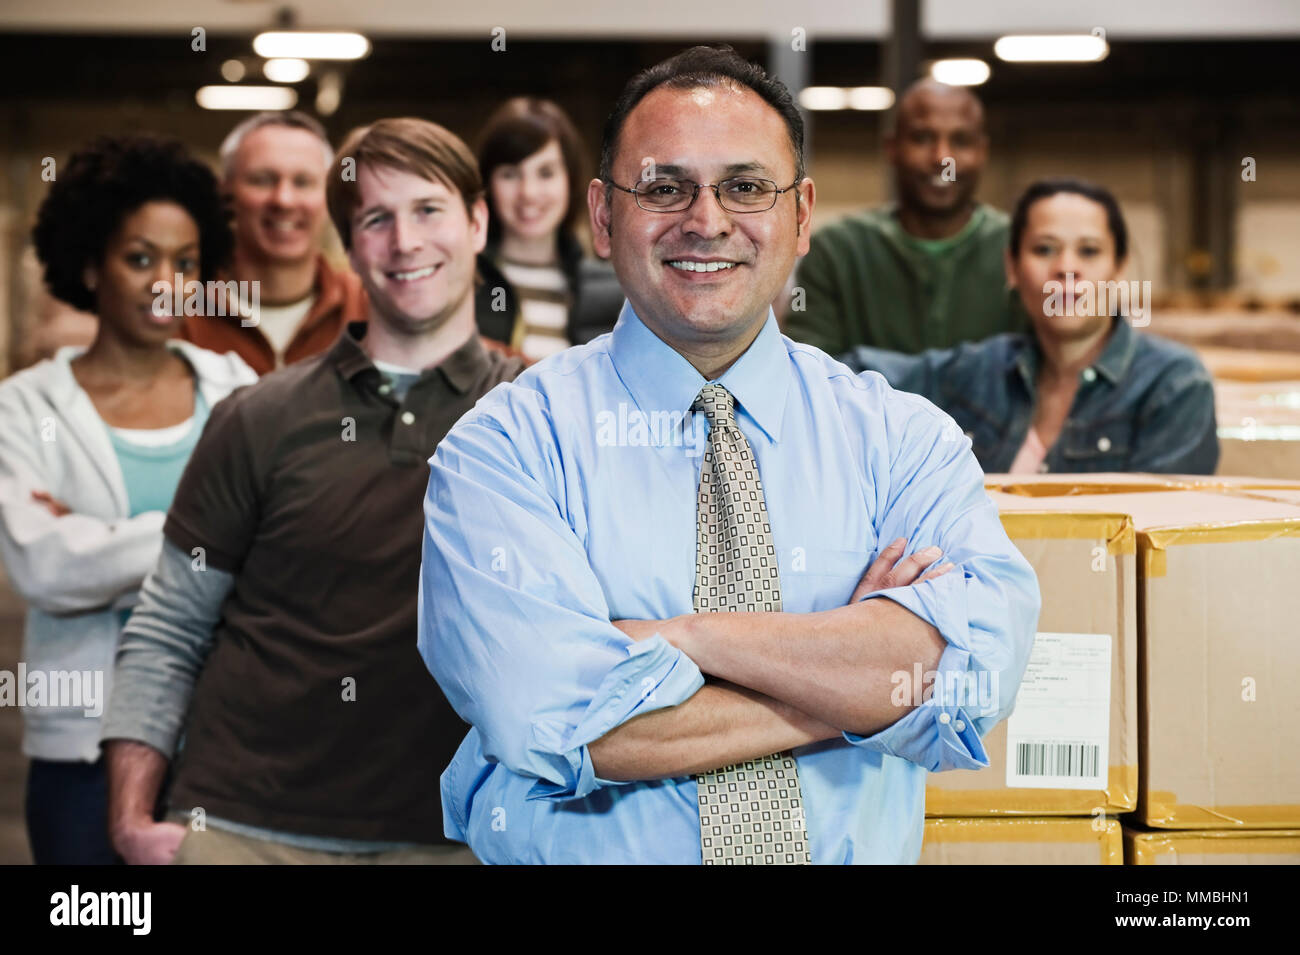 Team portrait of multi-ethnic  warehouse workers lead by a Hispanic American male executive and surrounded by large racks of products stored in cardbo - Stock Image